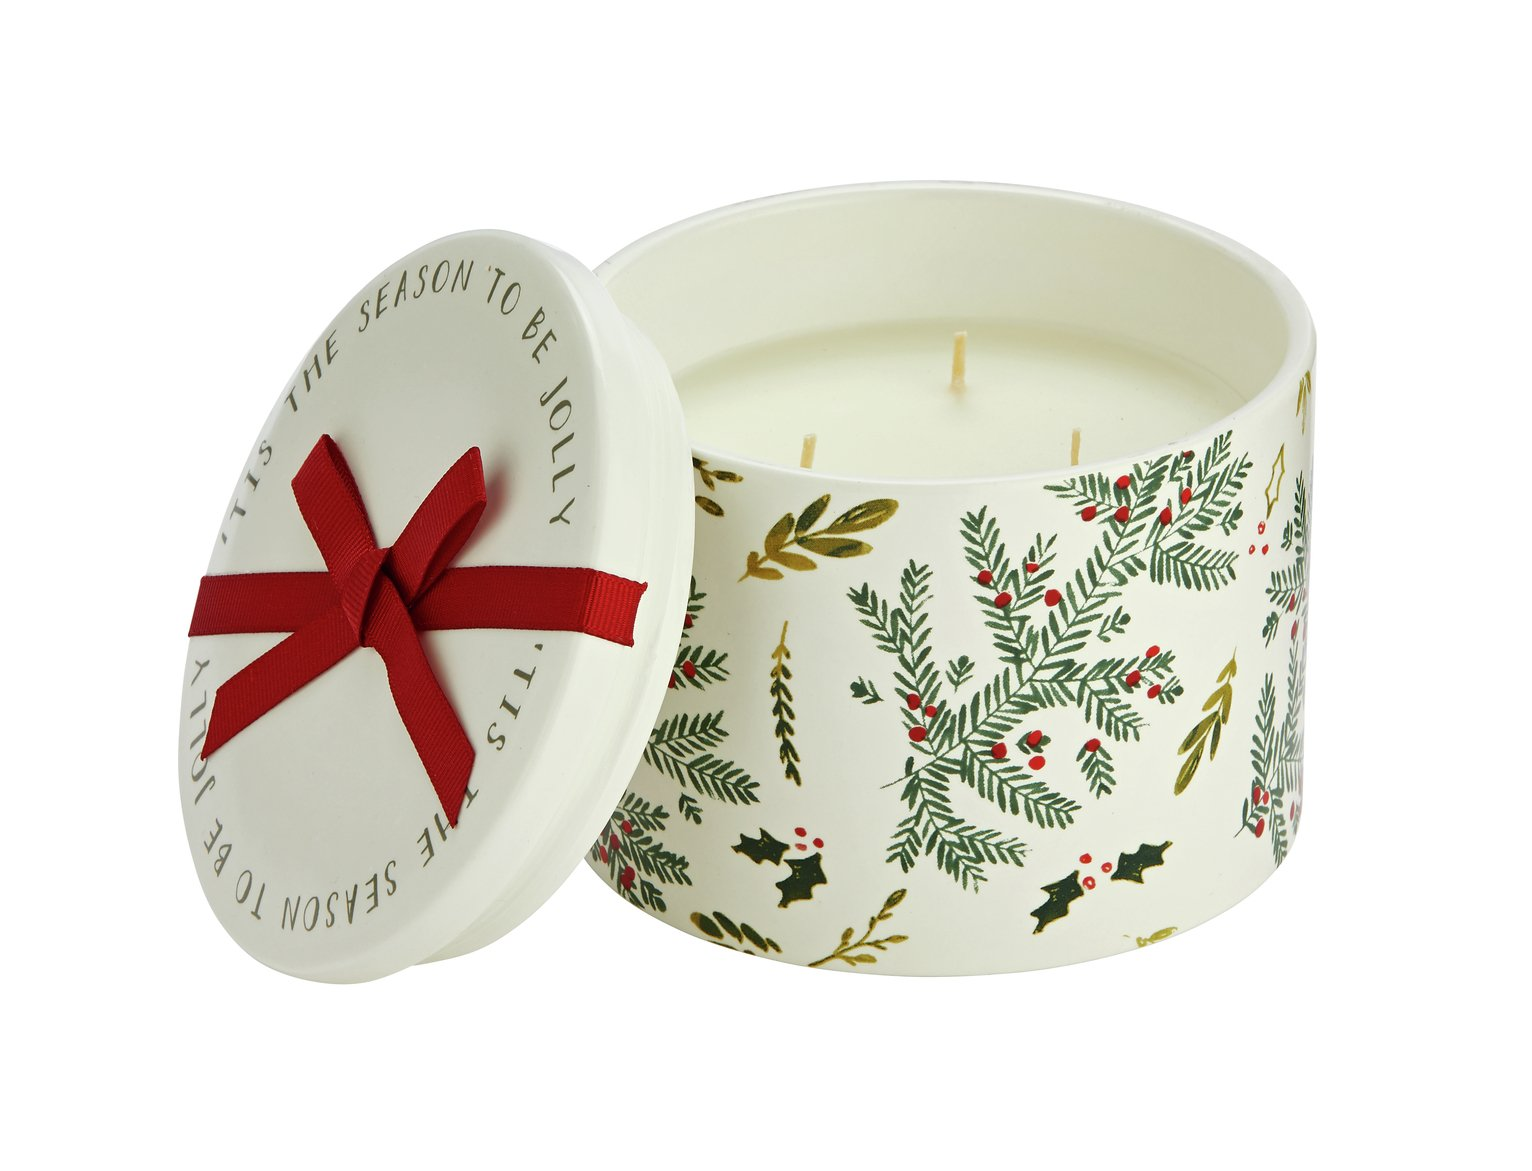 Sainsbury's Home Christmas Spice Printed Ceramic Candle